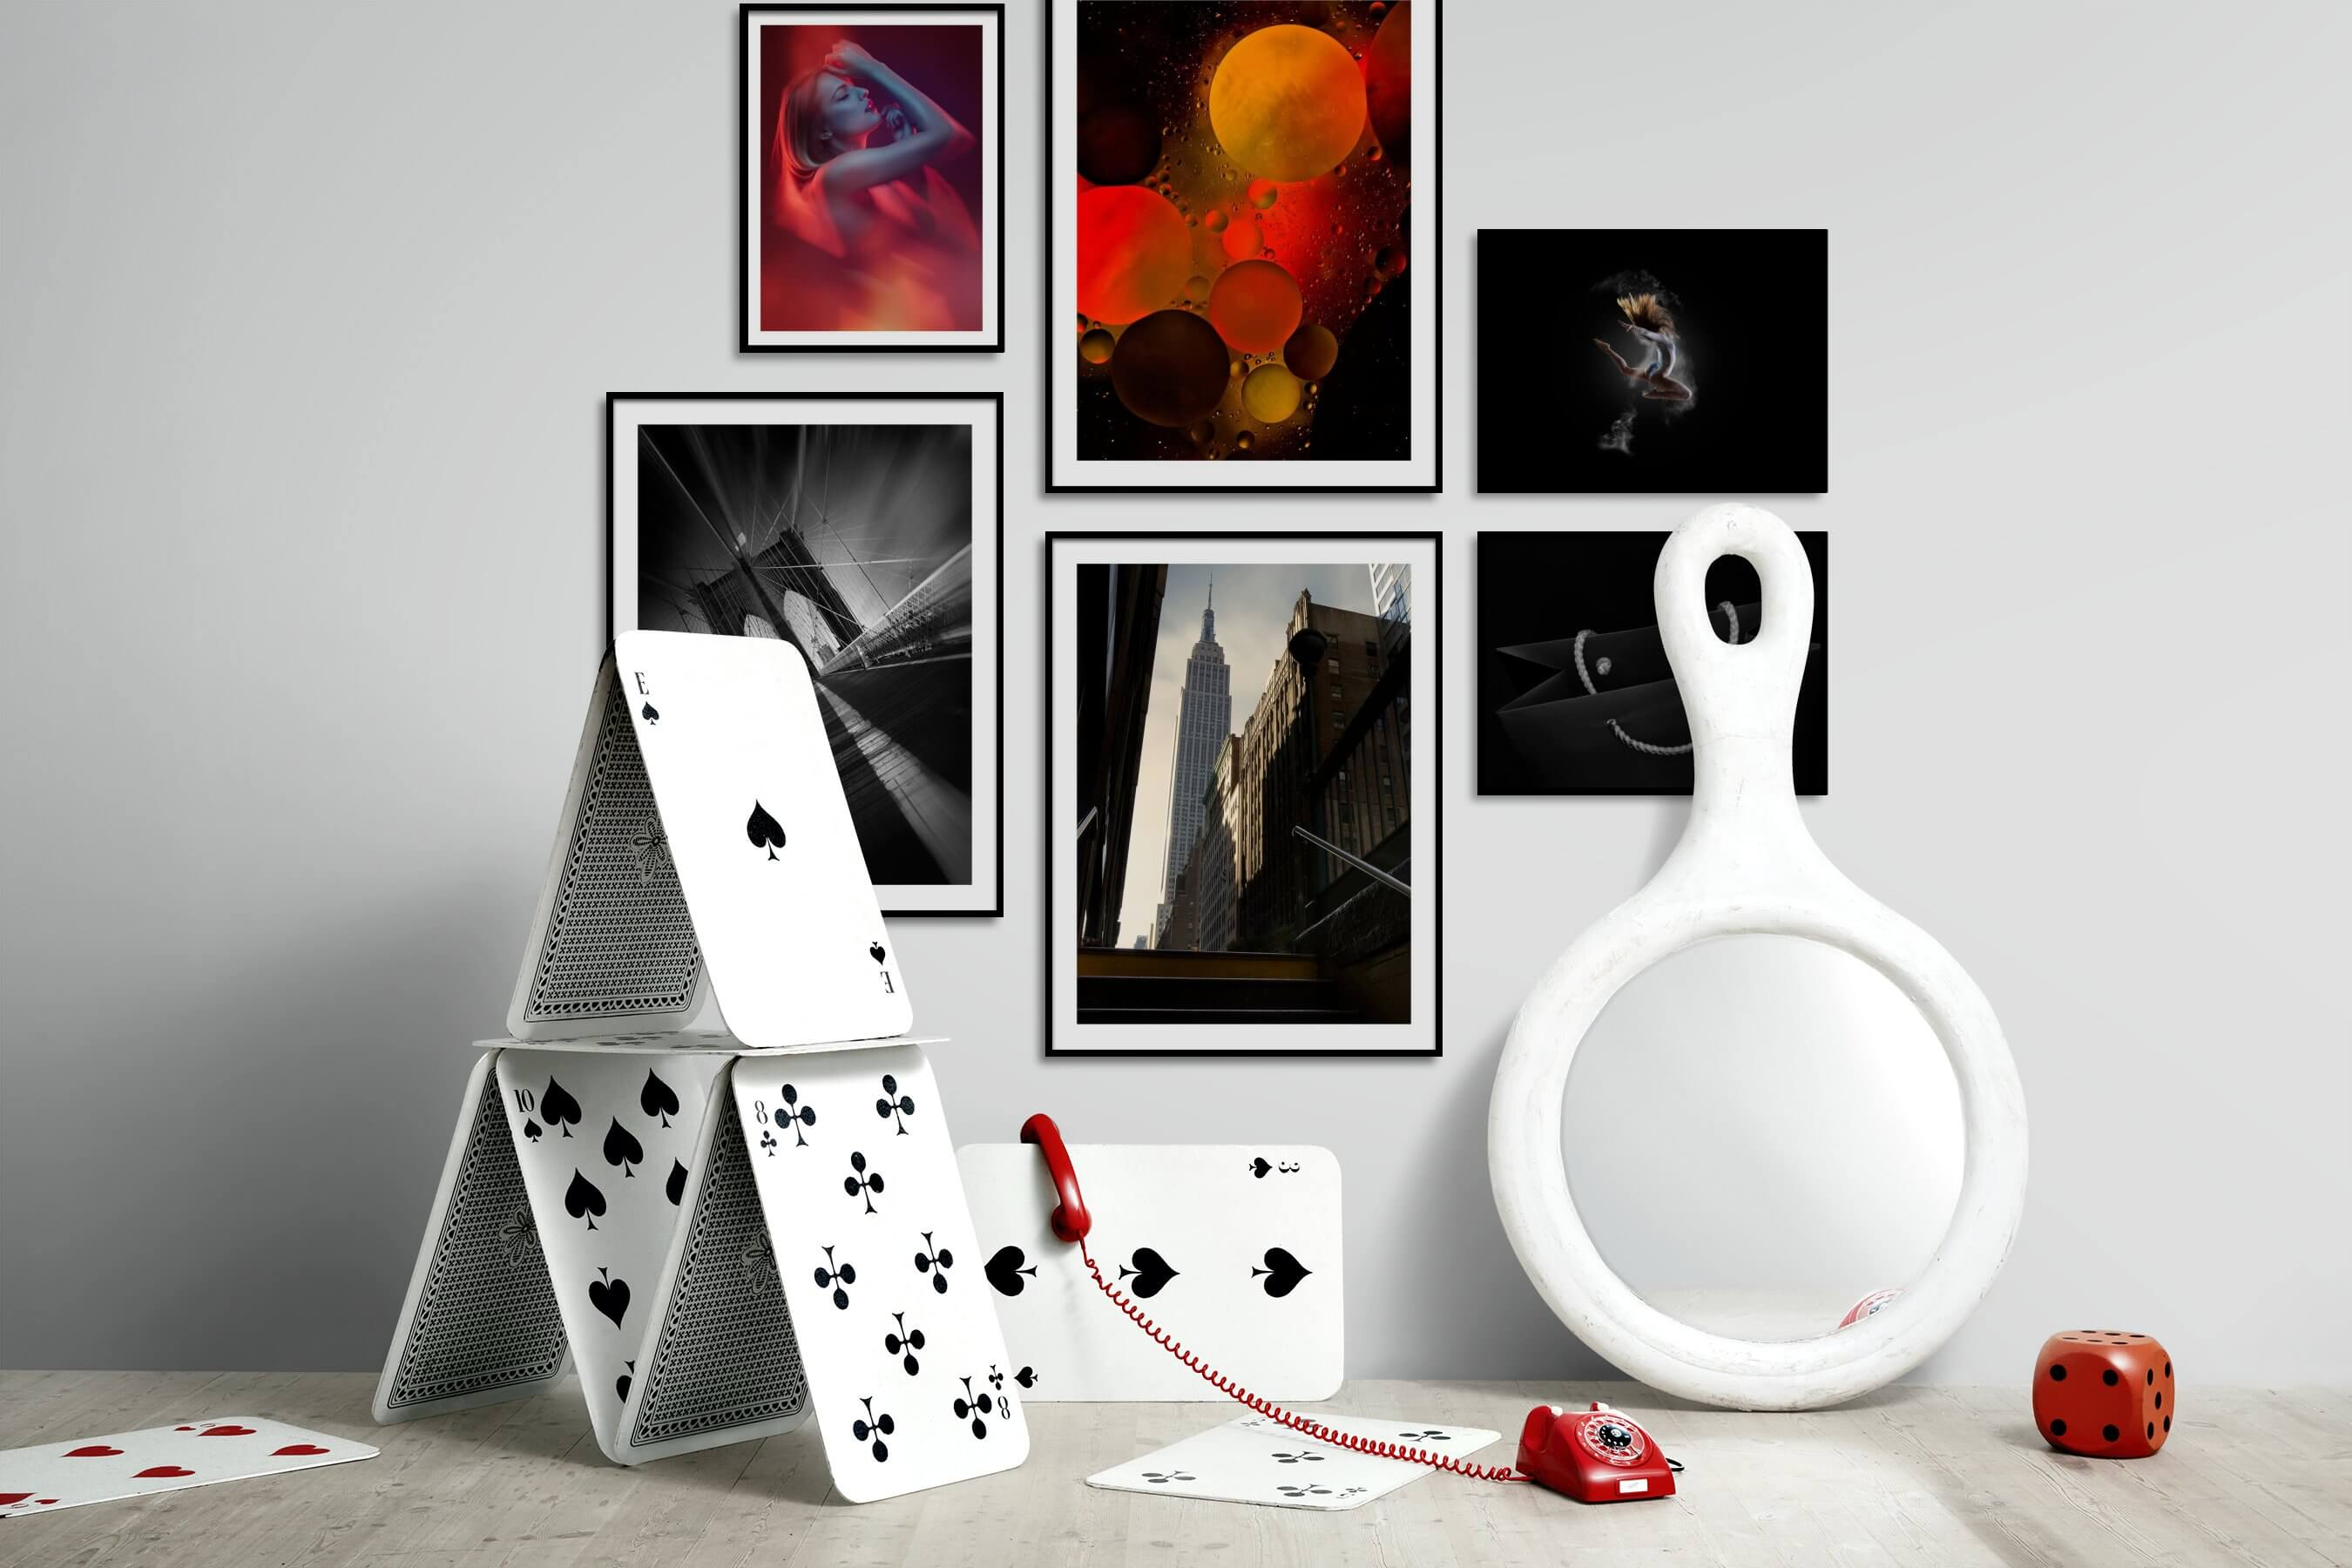 Gallery wall idea with six framed pictures arranged on a wall depicting Fashion & Beauty, For the Moderate, Black & White, City Life, Americana, Dark Tones, and For the Minimalist